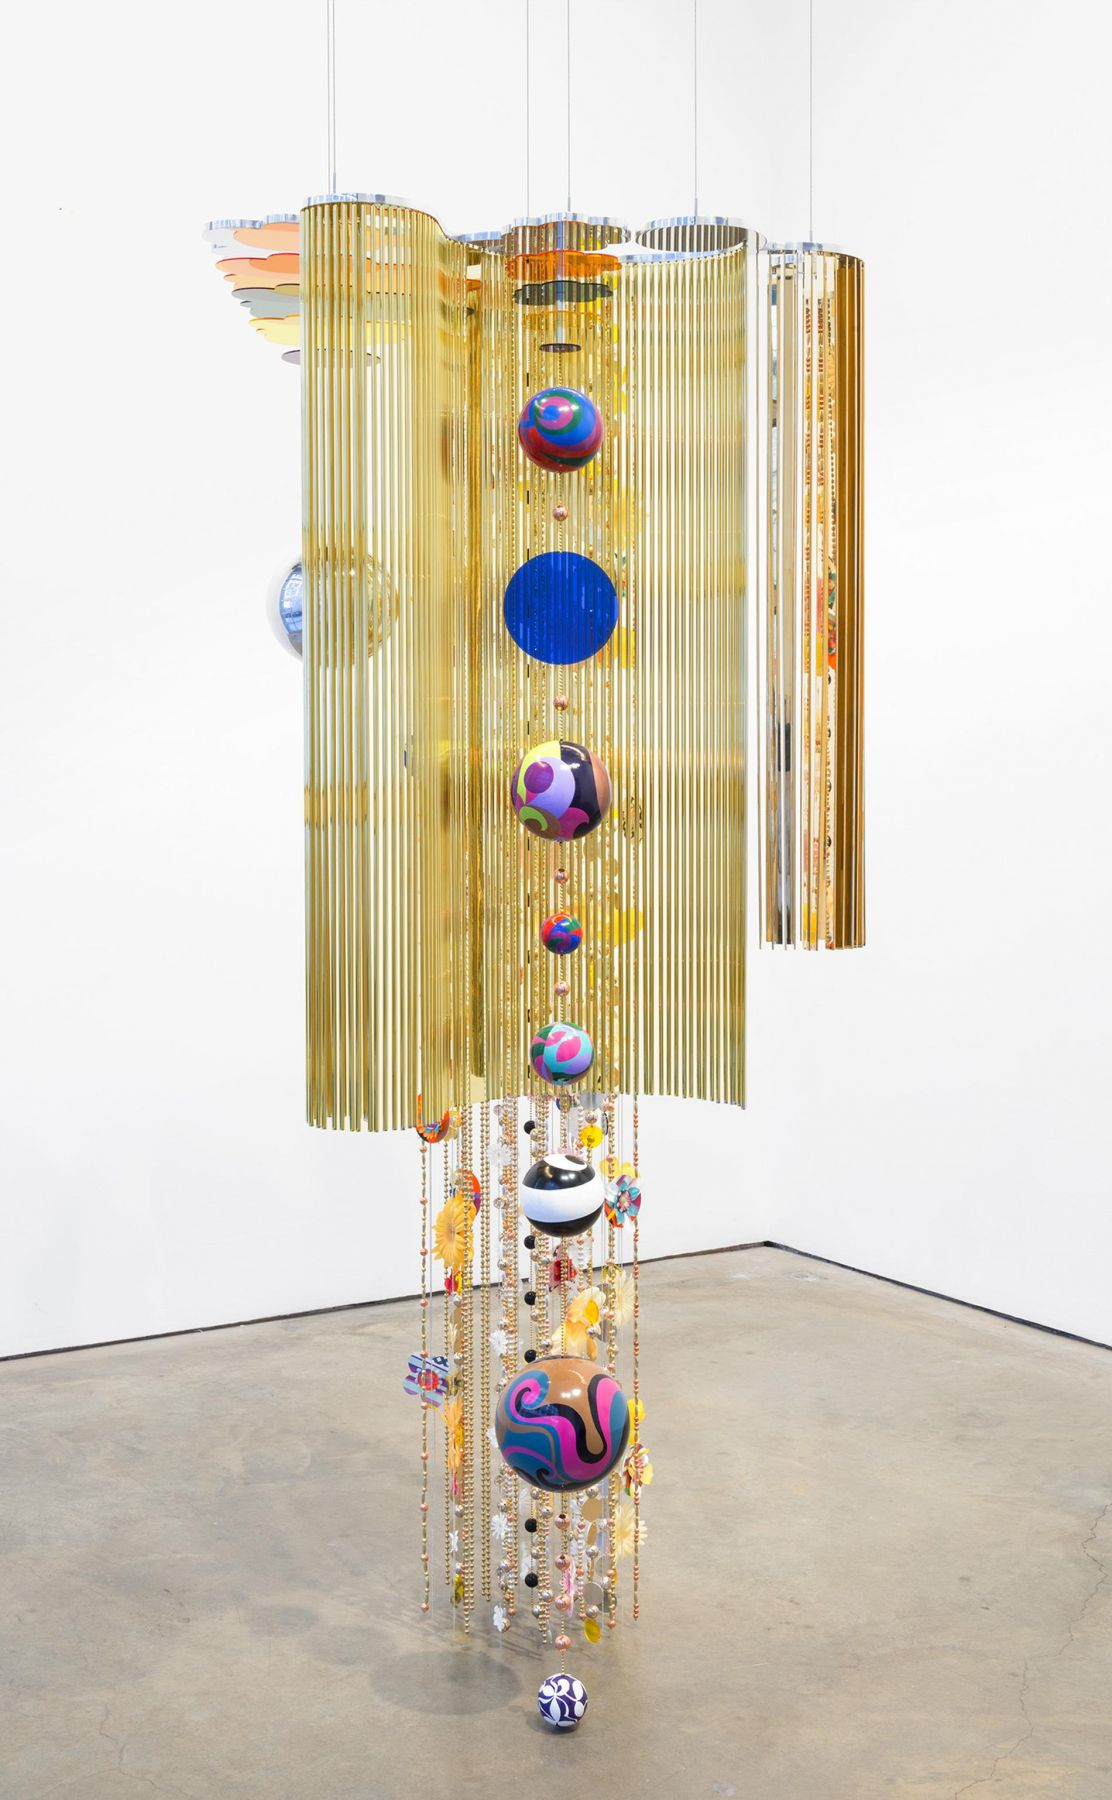 , BEATRIZ MILHAZES, Mariola, 2015 , Aluminum, brass, copper, acrylic, hand-painted enamel on aluminum, polyester and paper flowers, foiled paper, woodblock, screenprint, 89 x 42 x 32 in.